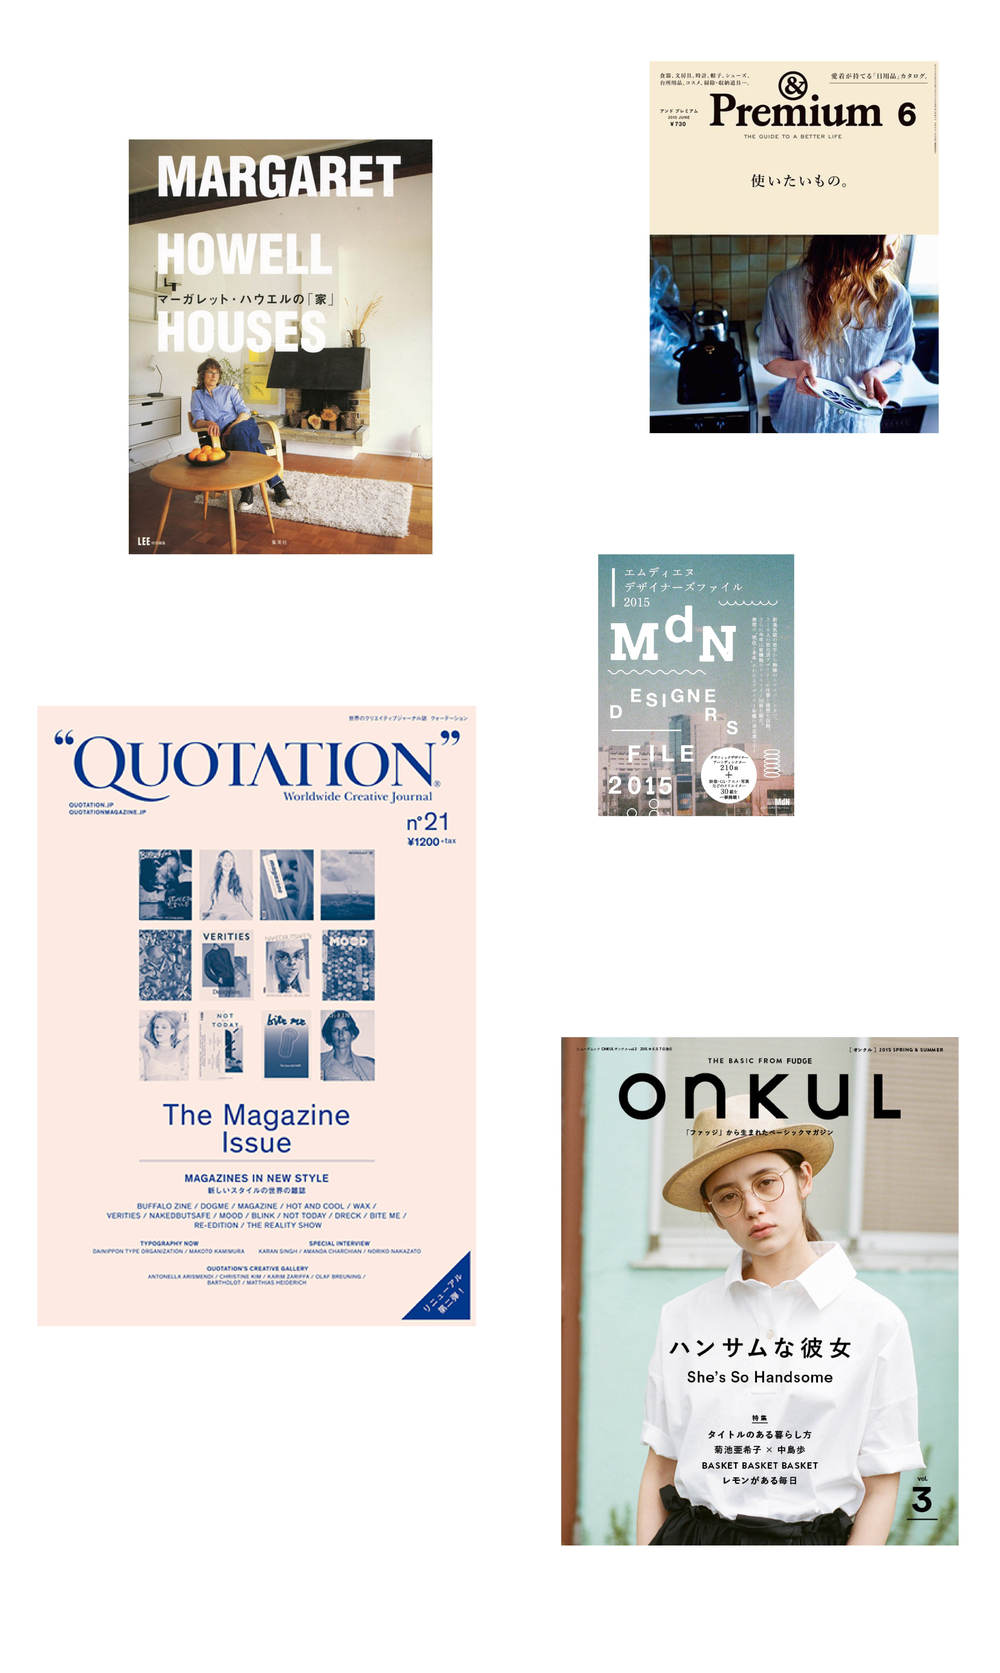 Magazine Collection from Japan :  Margaret Howell Houses ,  Premium ,  MDN 2015 ,  Quotation  &  Onkul